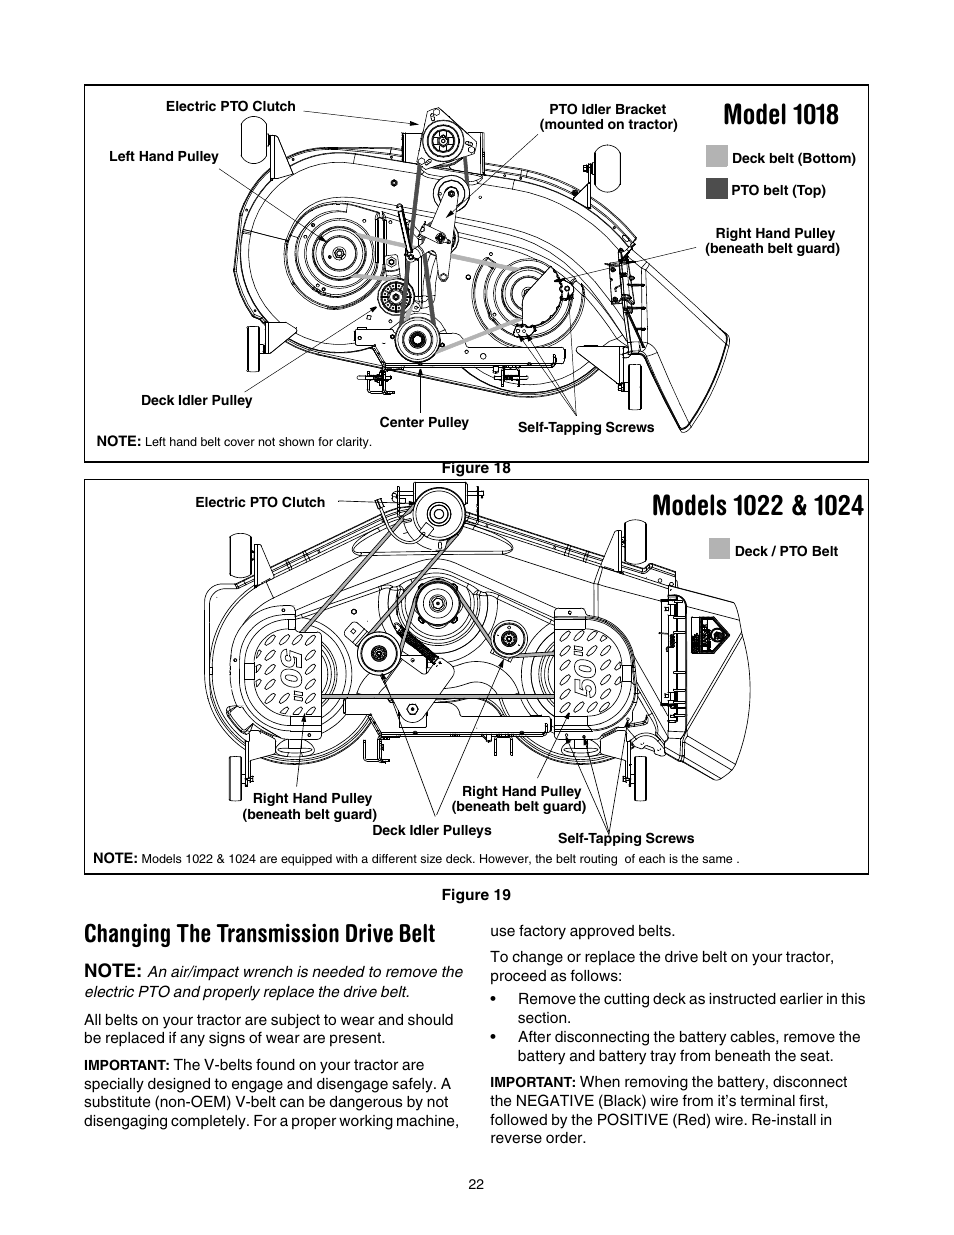 medium resolution of cub cadet pto belt diagram wiring diagram usedcub cadet deck belt diagram cub cadet electric pto